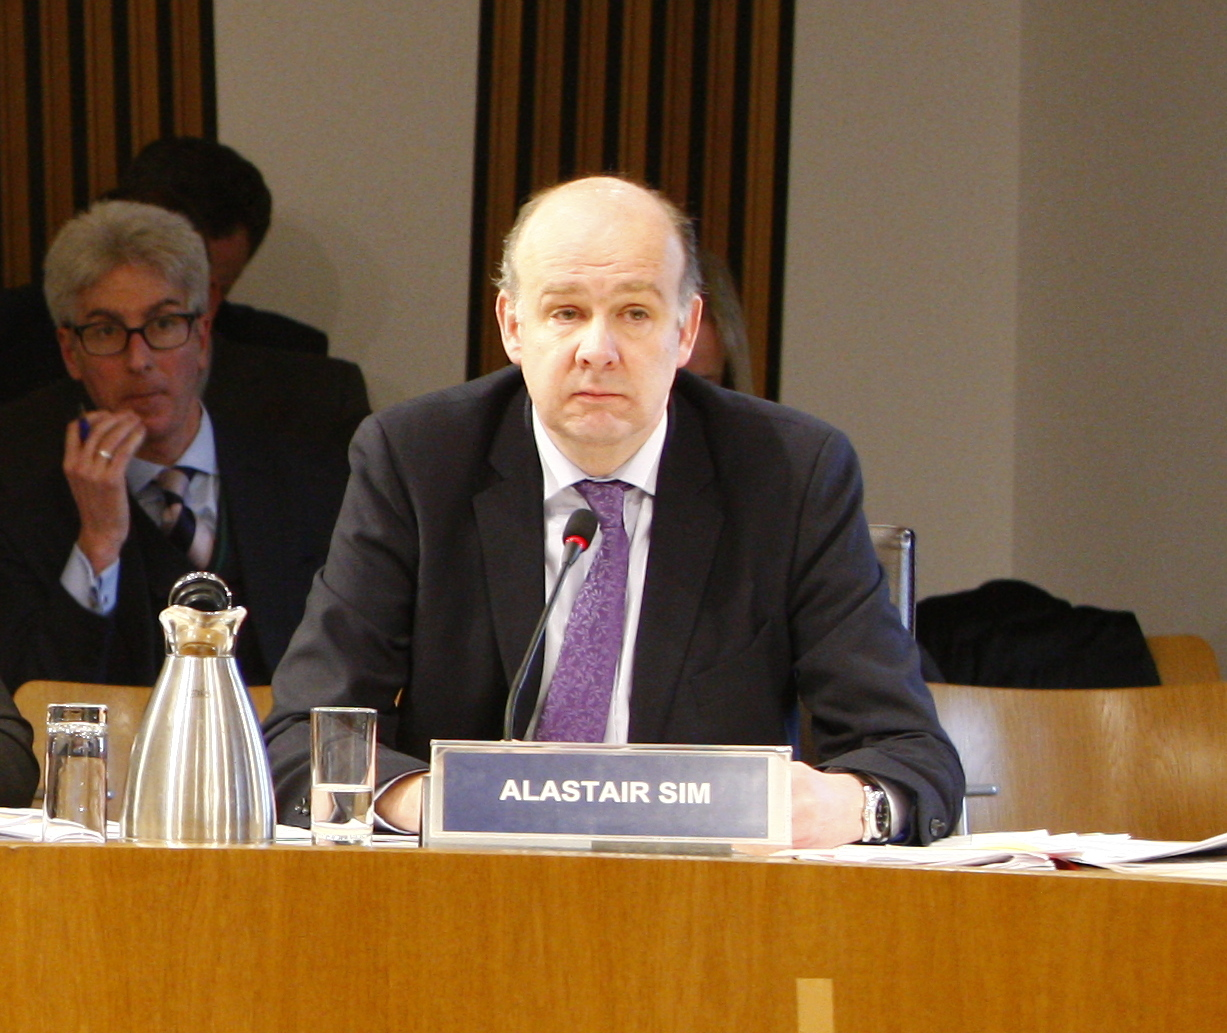 Alastair Sim, director of Universities Scotland, gives his stark warning over the future financial health of the sector just weeks before the Scottish Government announces its spending review